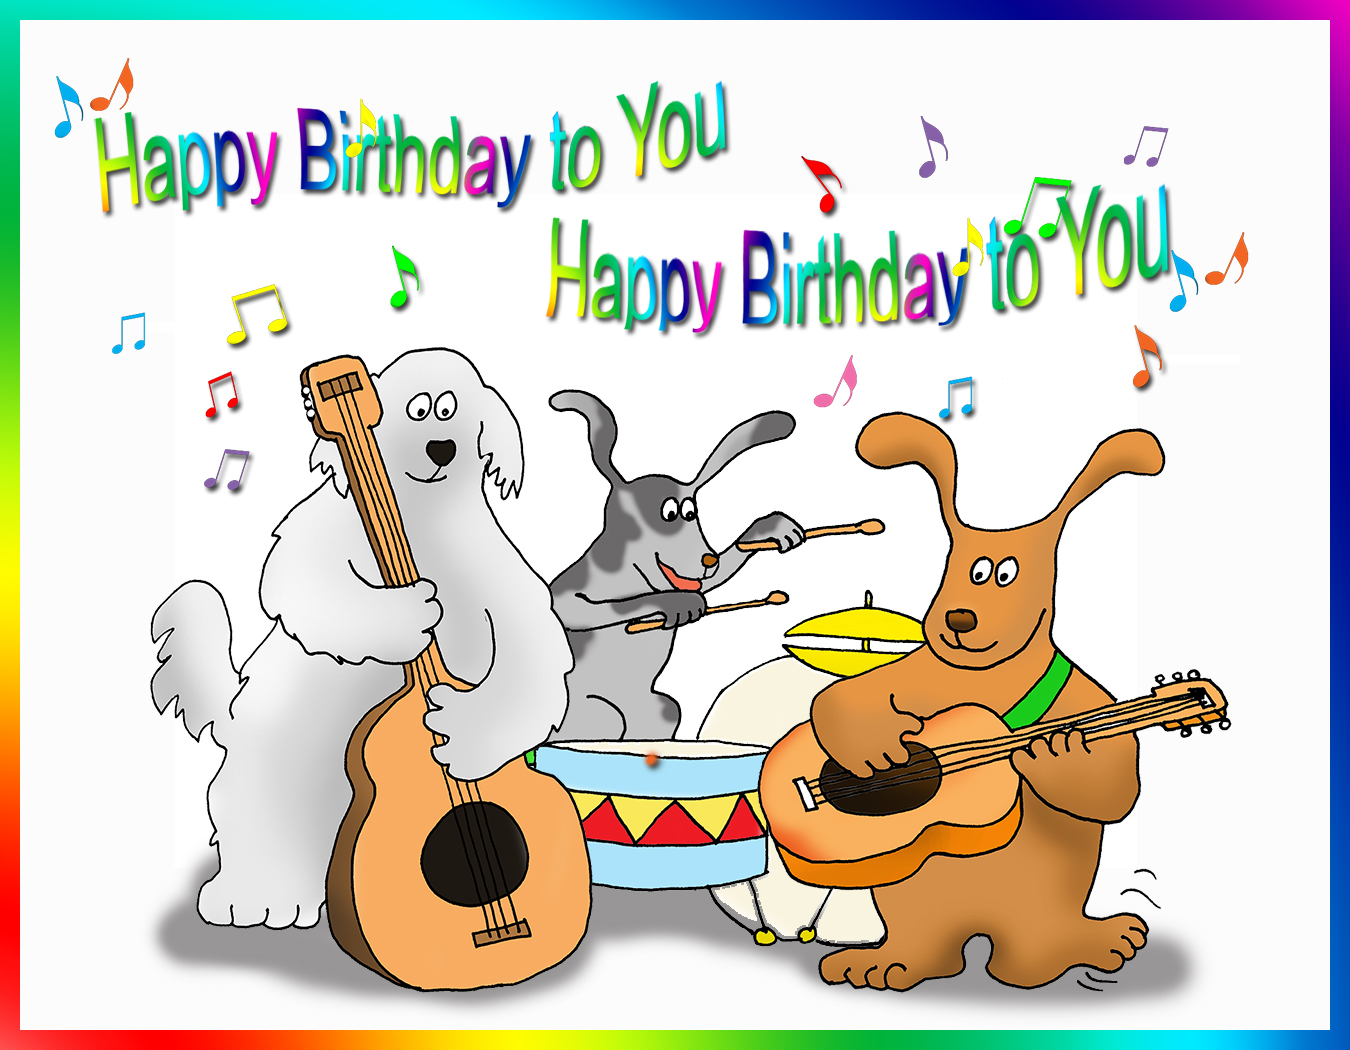 Happy Birthday Card With Dogs